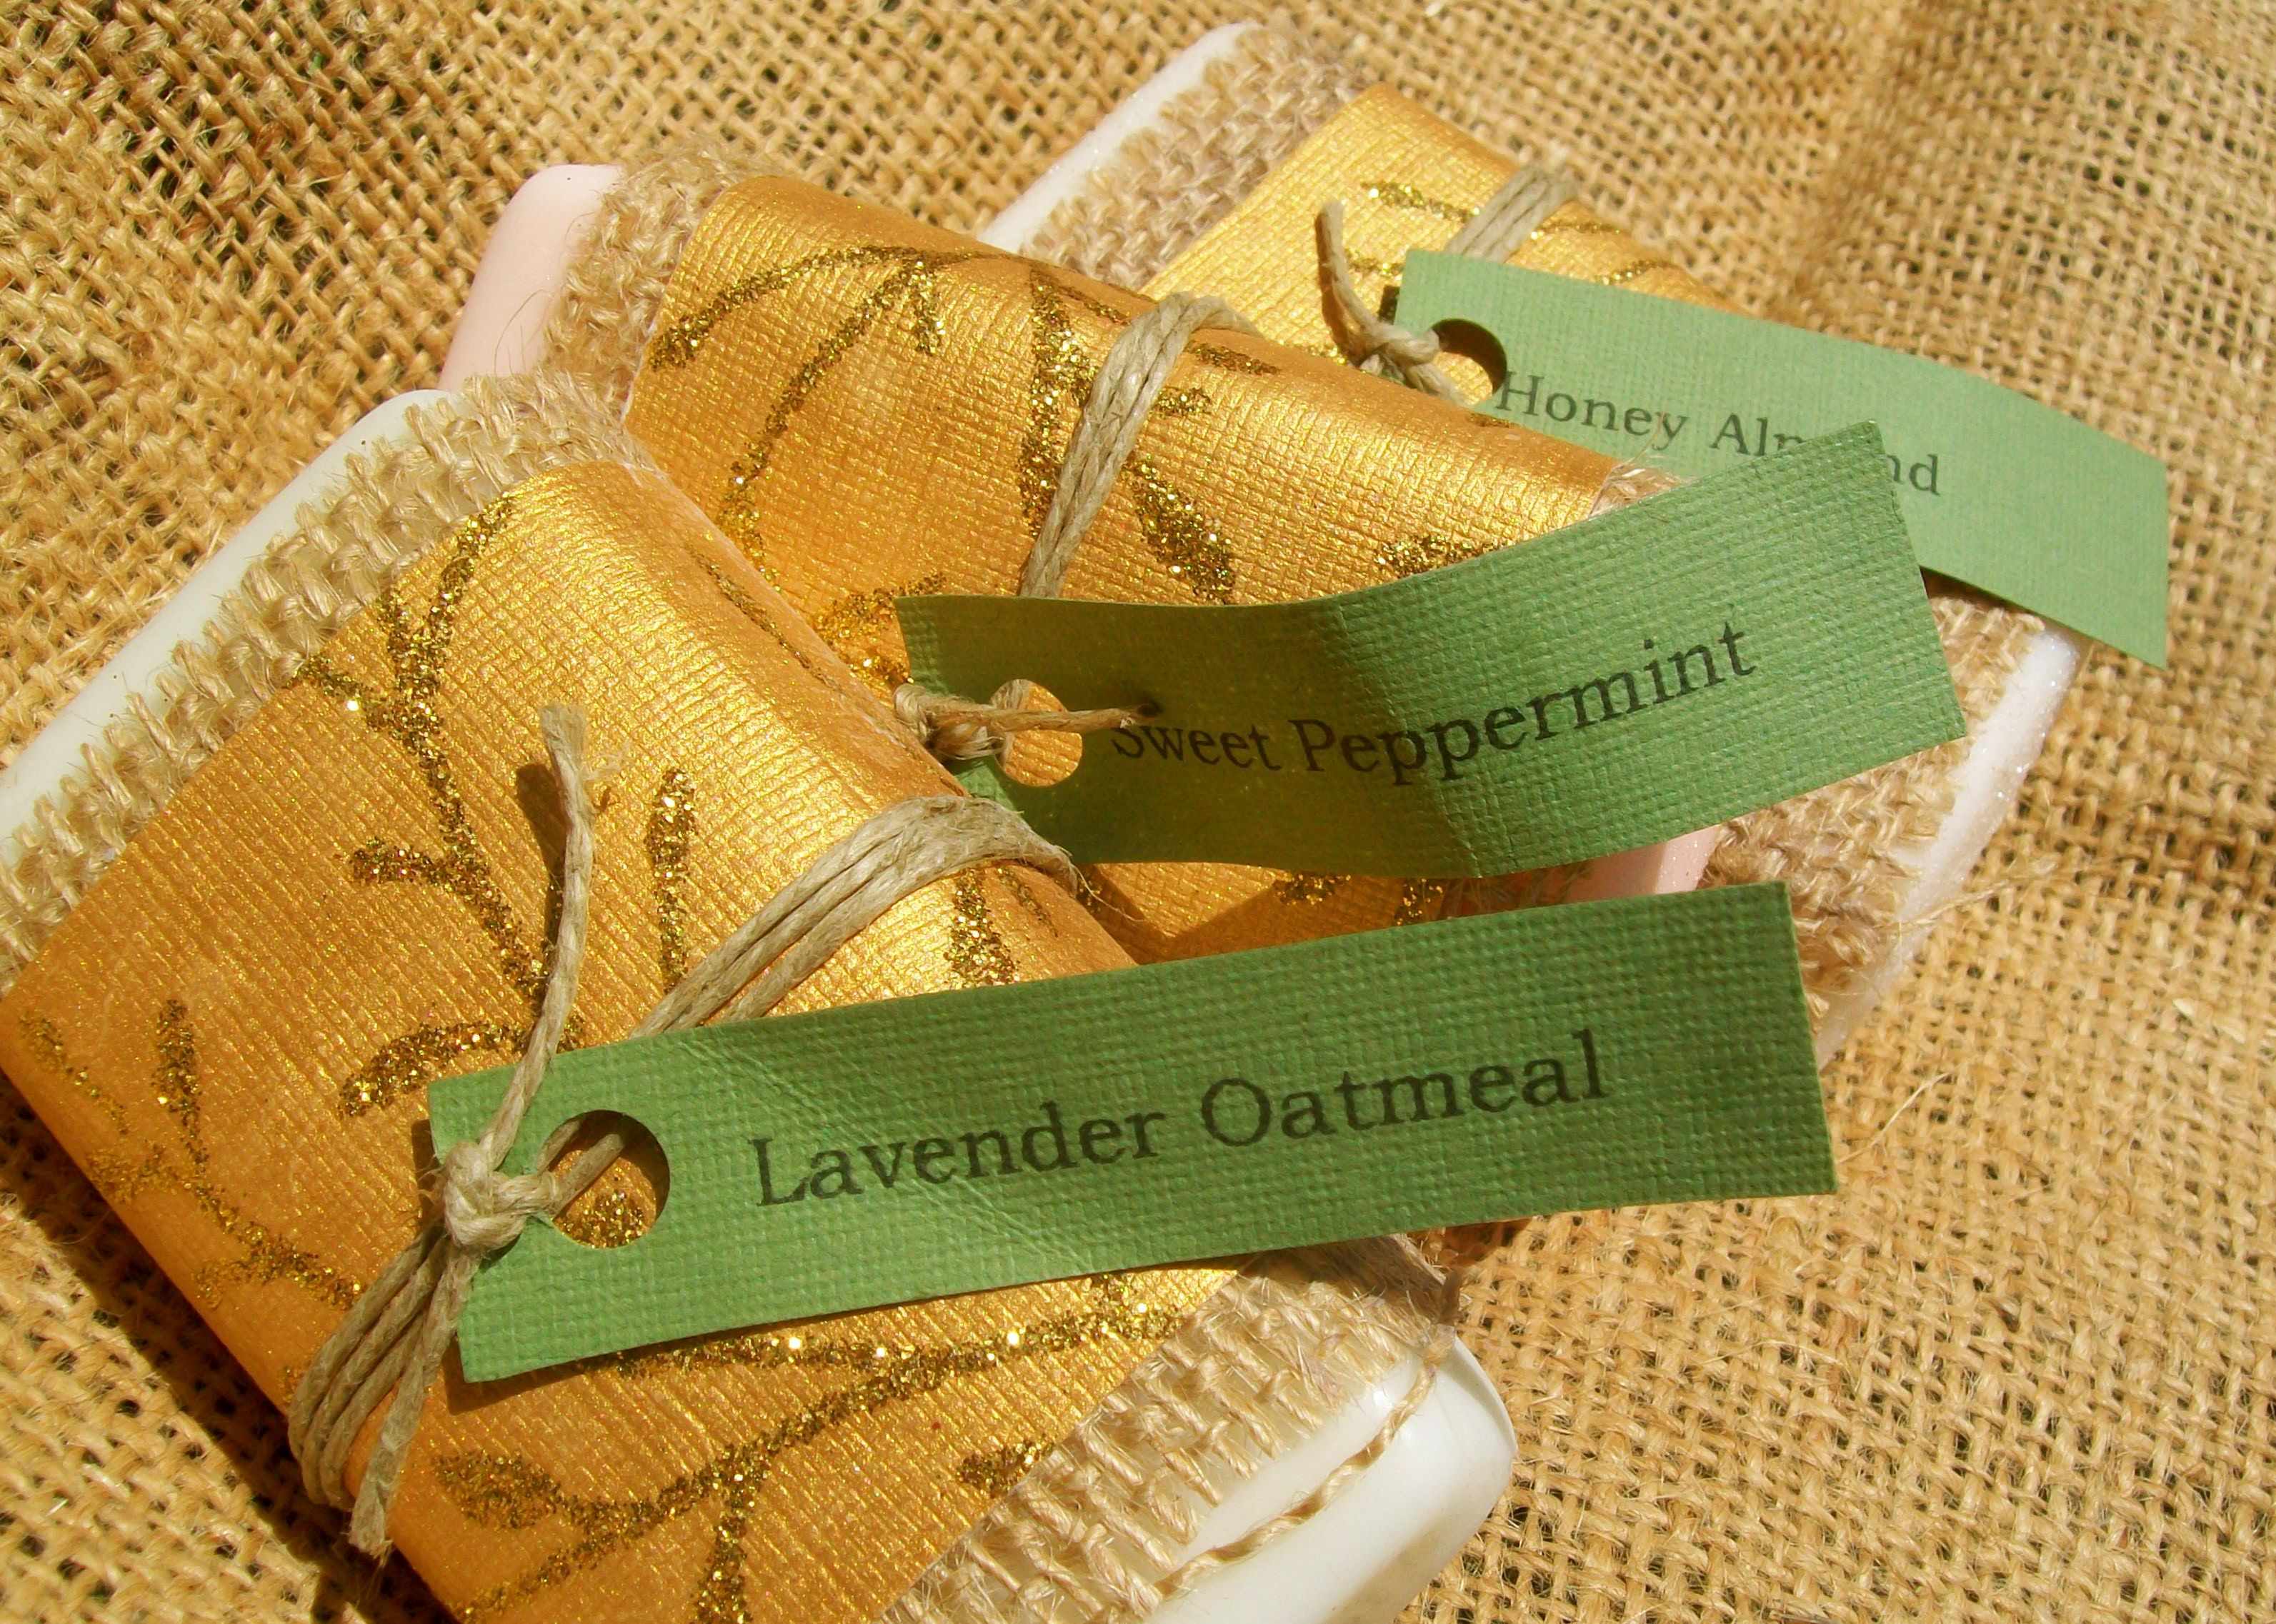 Heather ,Ooh La Lather Soaps offers all natural homemade soaps in Honey Almond, Lavender Oatmeal, Sweet Peppermint, and Eucalyptus Lavender indulgent scents. A creamy, hydrating Goat's milk base is used to soothe dry skin. Soap also contains plant-derived ingredients and essential oils for a rich texture and scent.